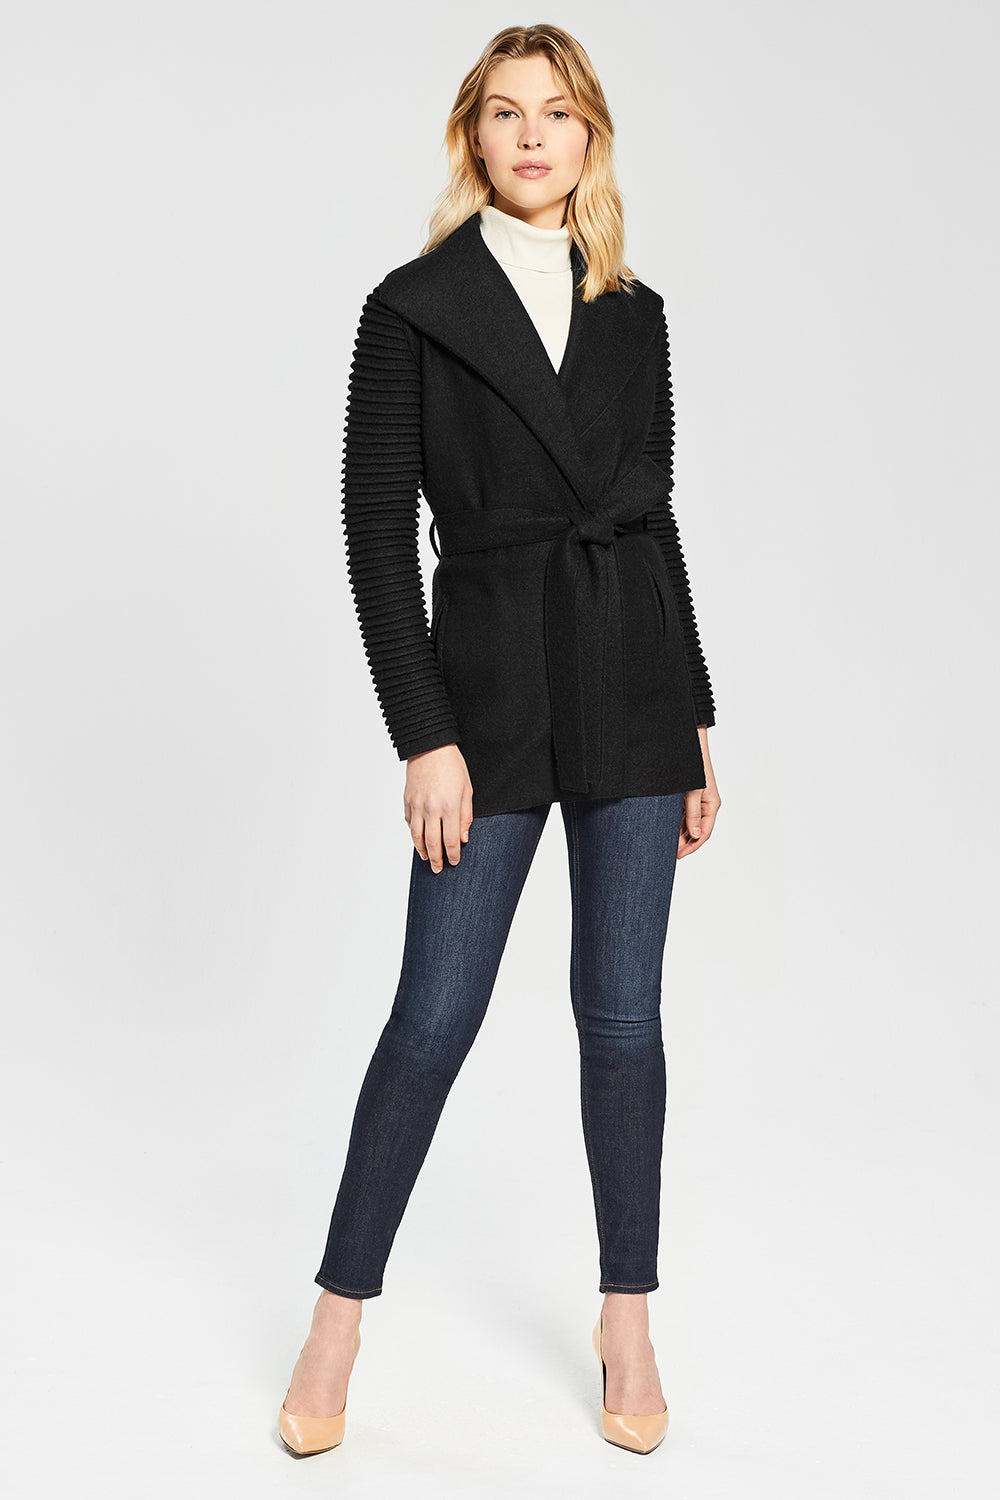 Sentaler Wrap Coat with Ribbed Sleeves featured in Superfine Alpaca and available in Black. Seen from Front.